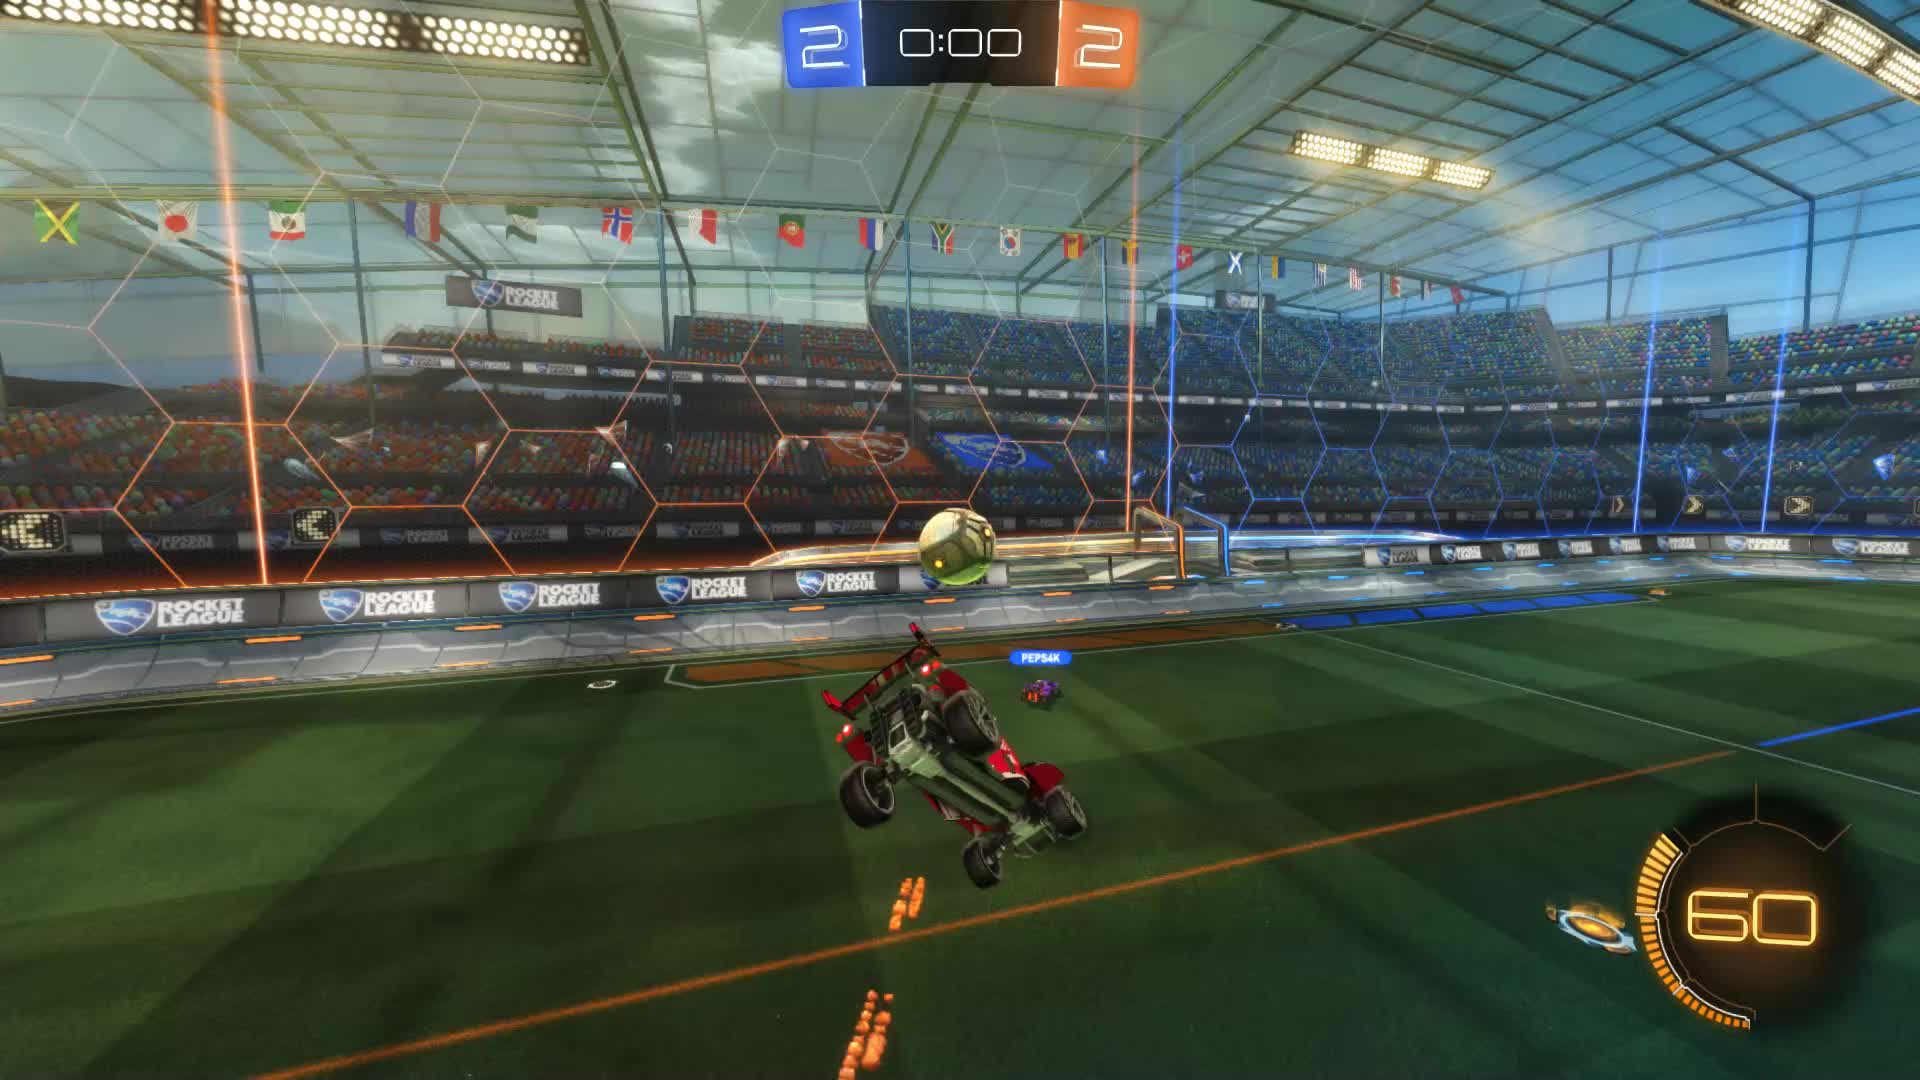 Baby Shark doo doo doo, Gif Your Game, GifYourGame, Goal, Rocket League, RocketLeague, Goal 5: Baby Shark doo doo doo GIFs